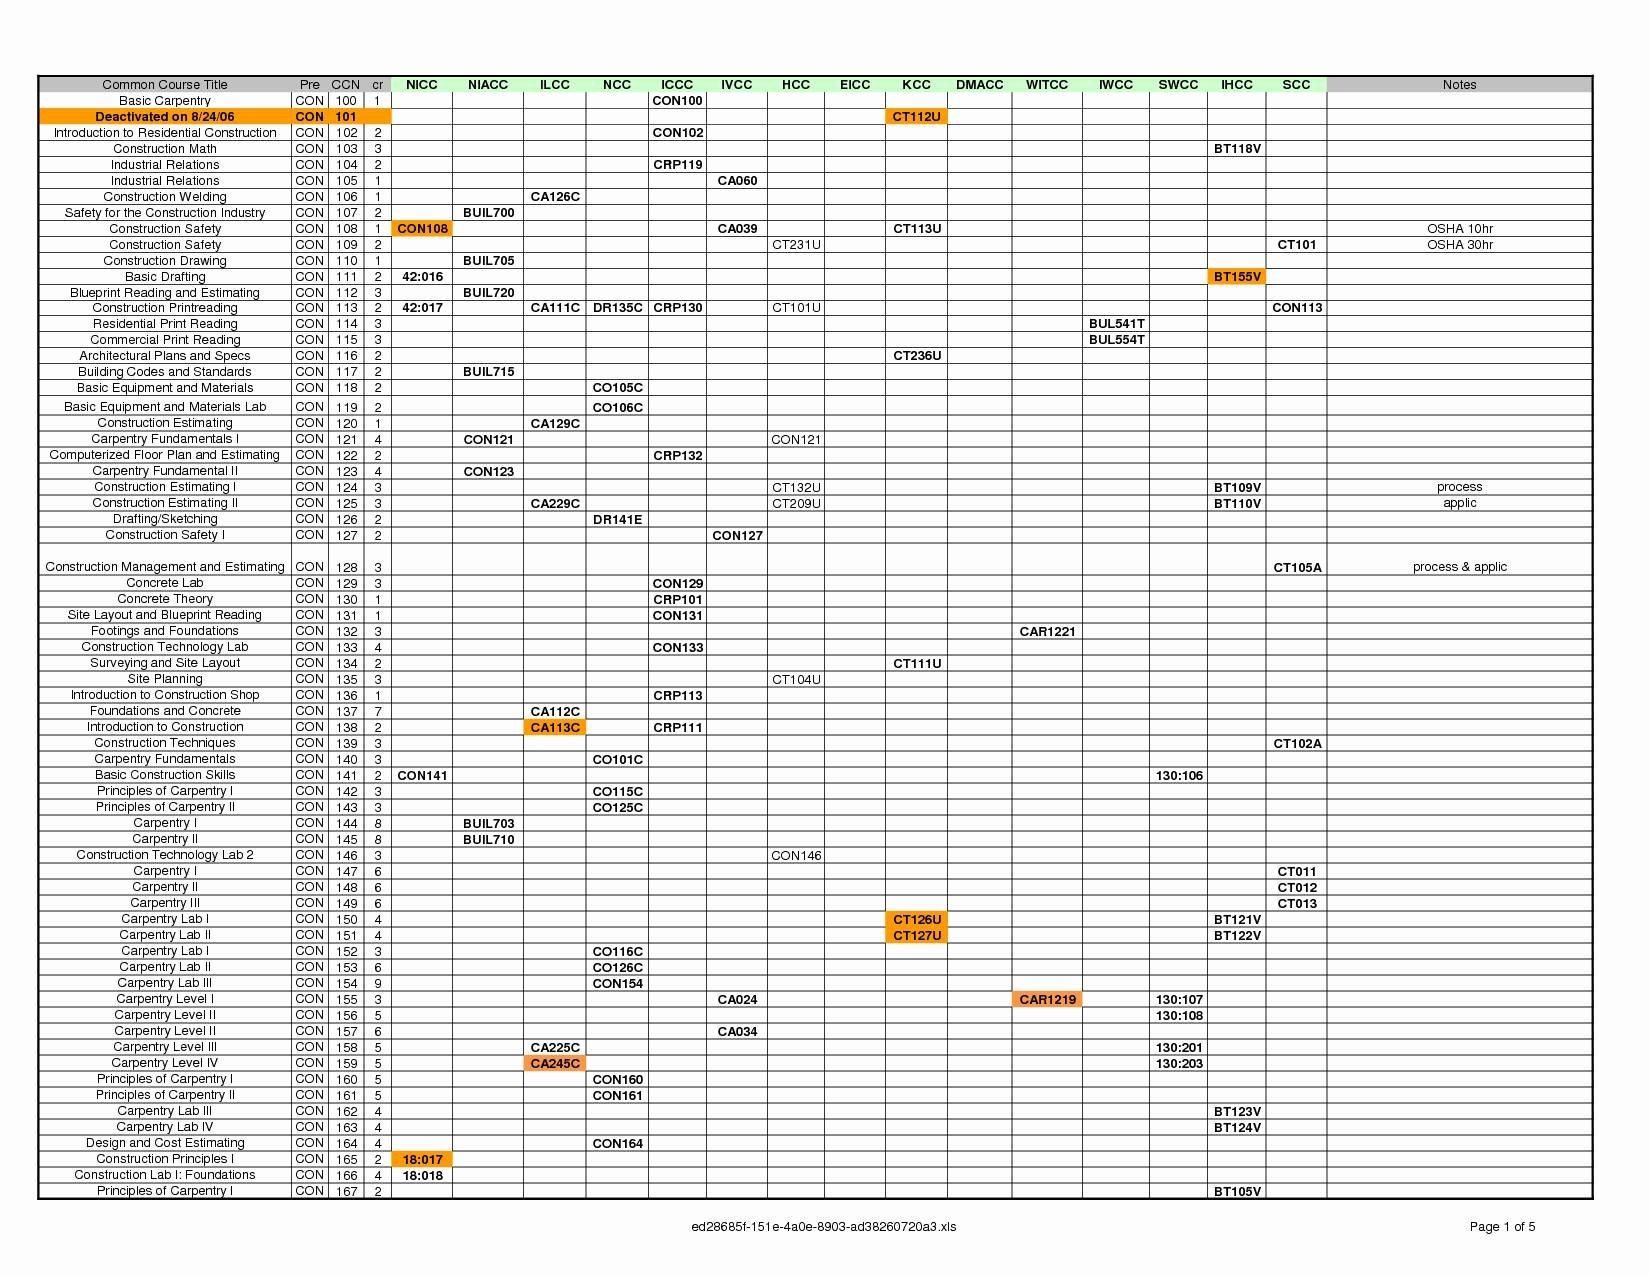 How To Unlock An Excel Spreadsheet Without The Password 2013 Unique With Password Spreadsheet